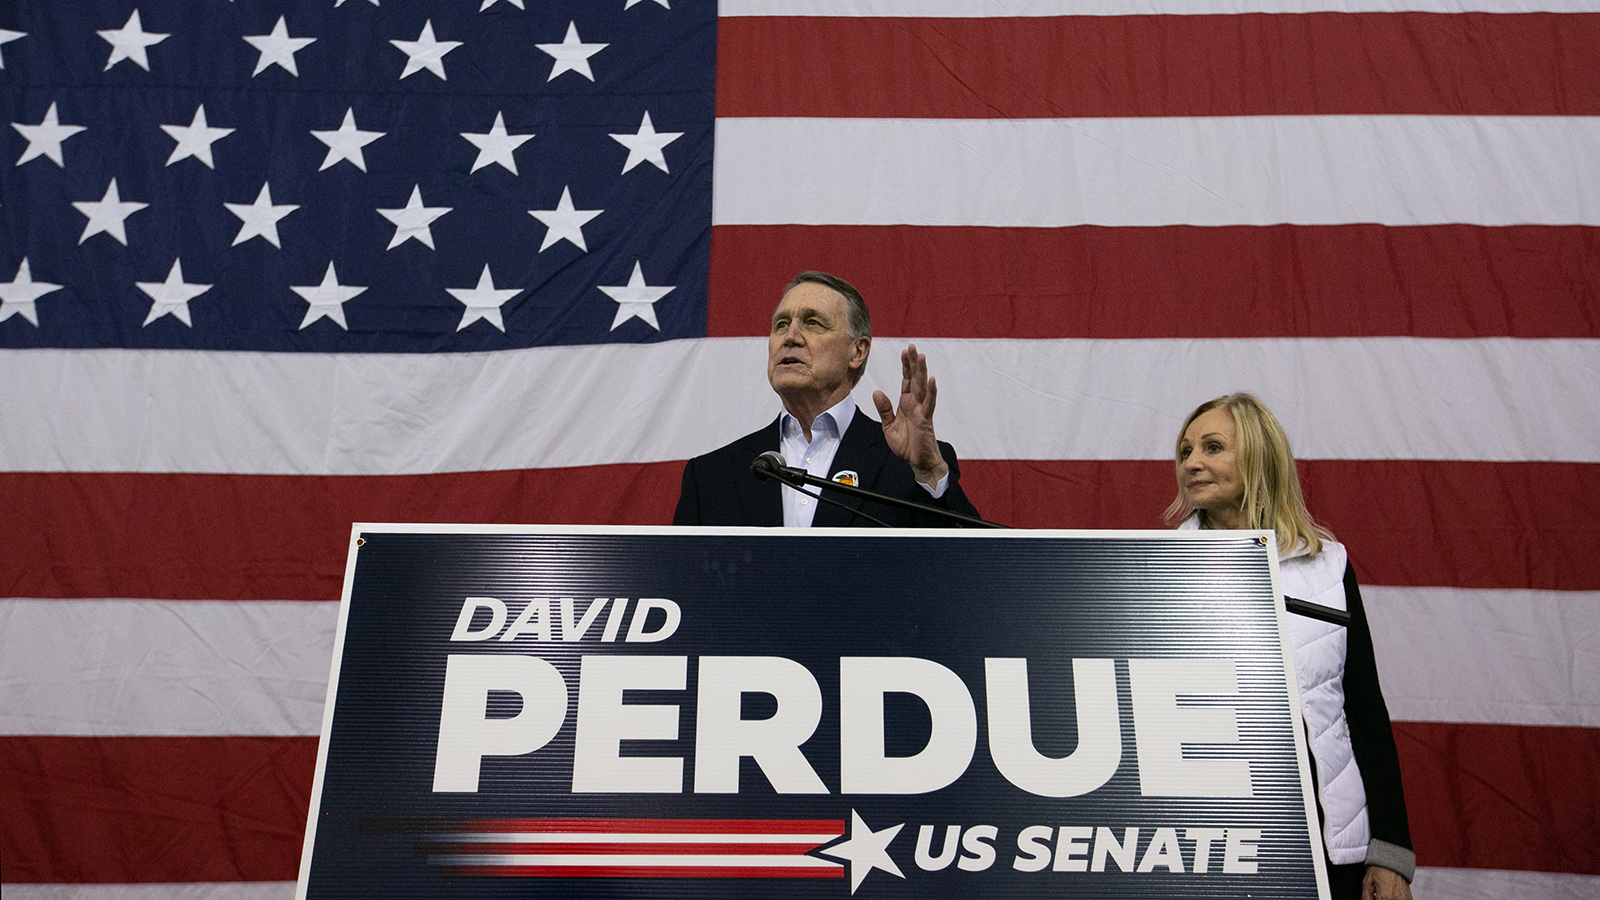 Sen. David Perdue and his wife, Bonnie, address the crowd during a campaign rally at Peachtree Dekalb Airport on December 14, in Atlanta.